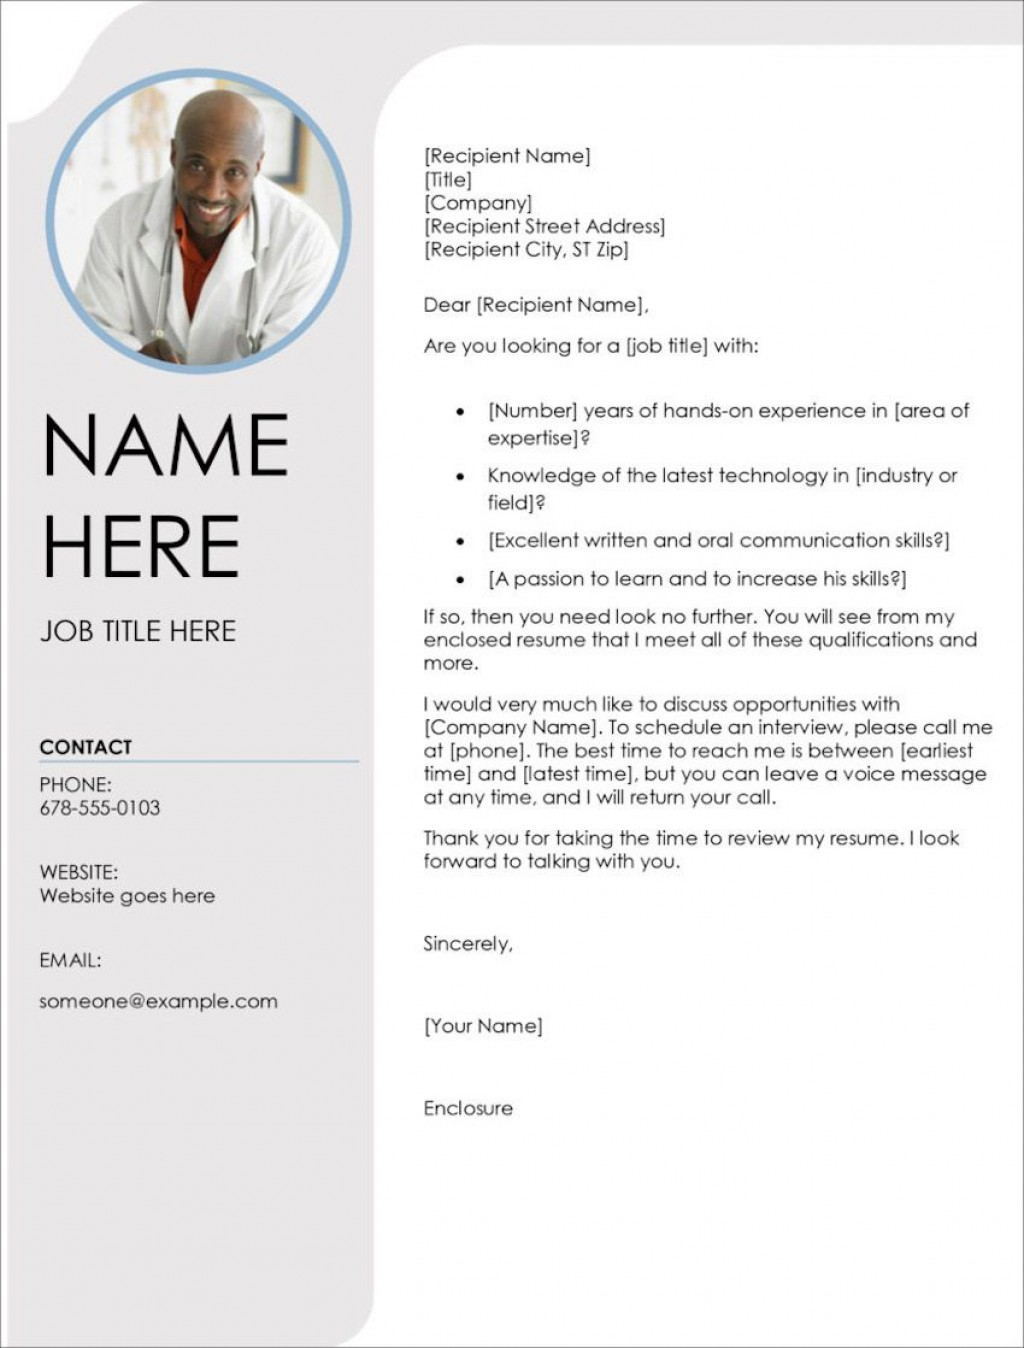 007 Unique Cover Letter Template Download Mac High Resolution  FreeLarge